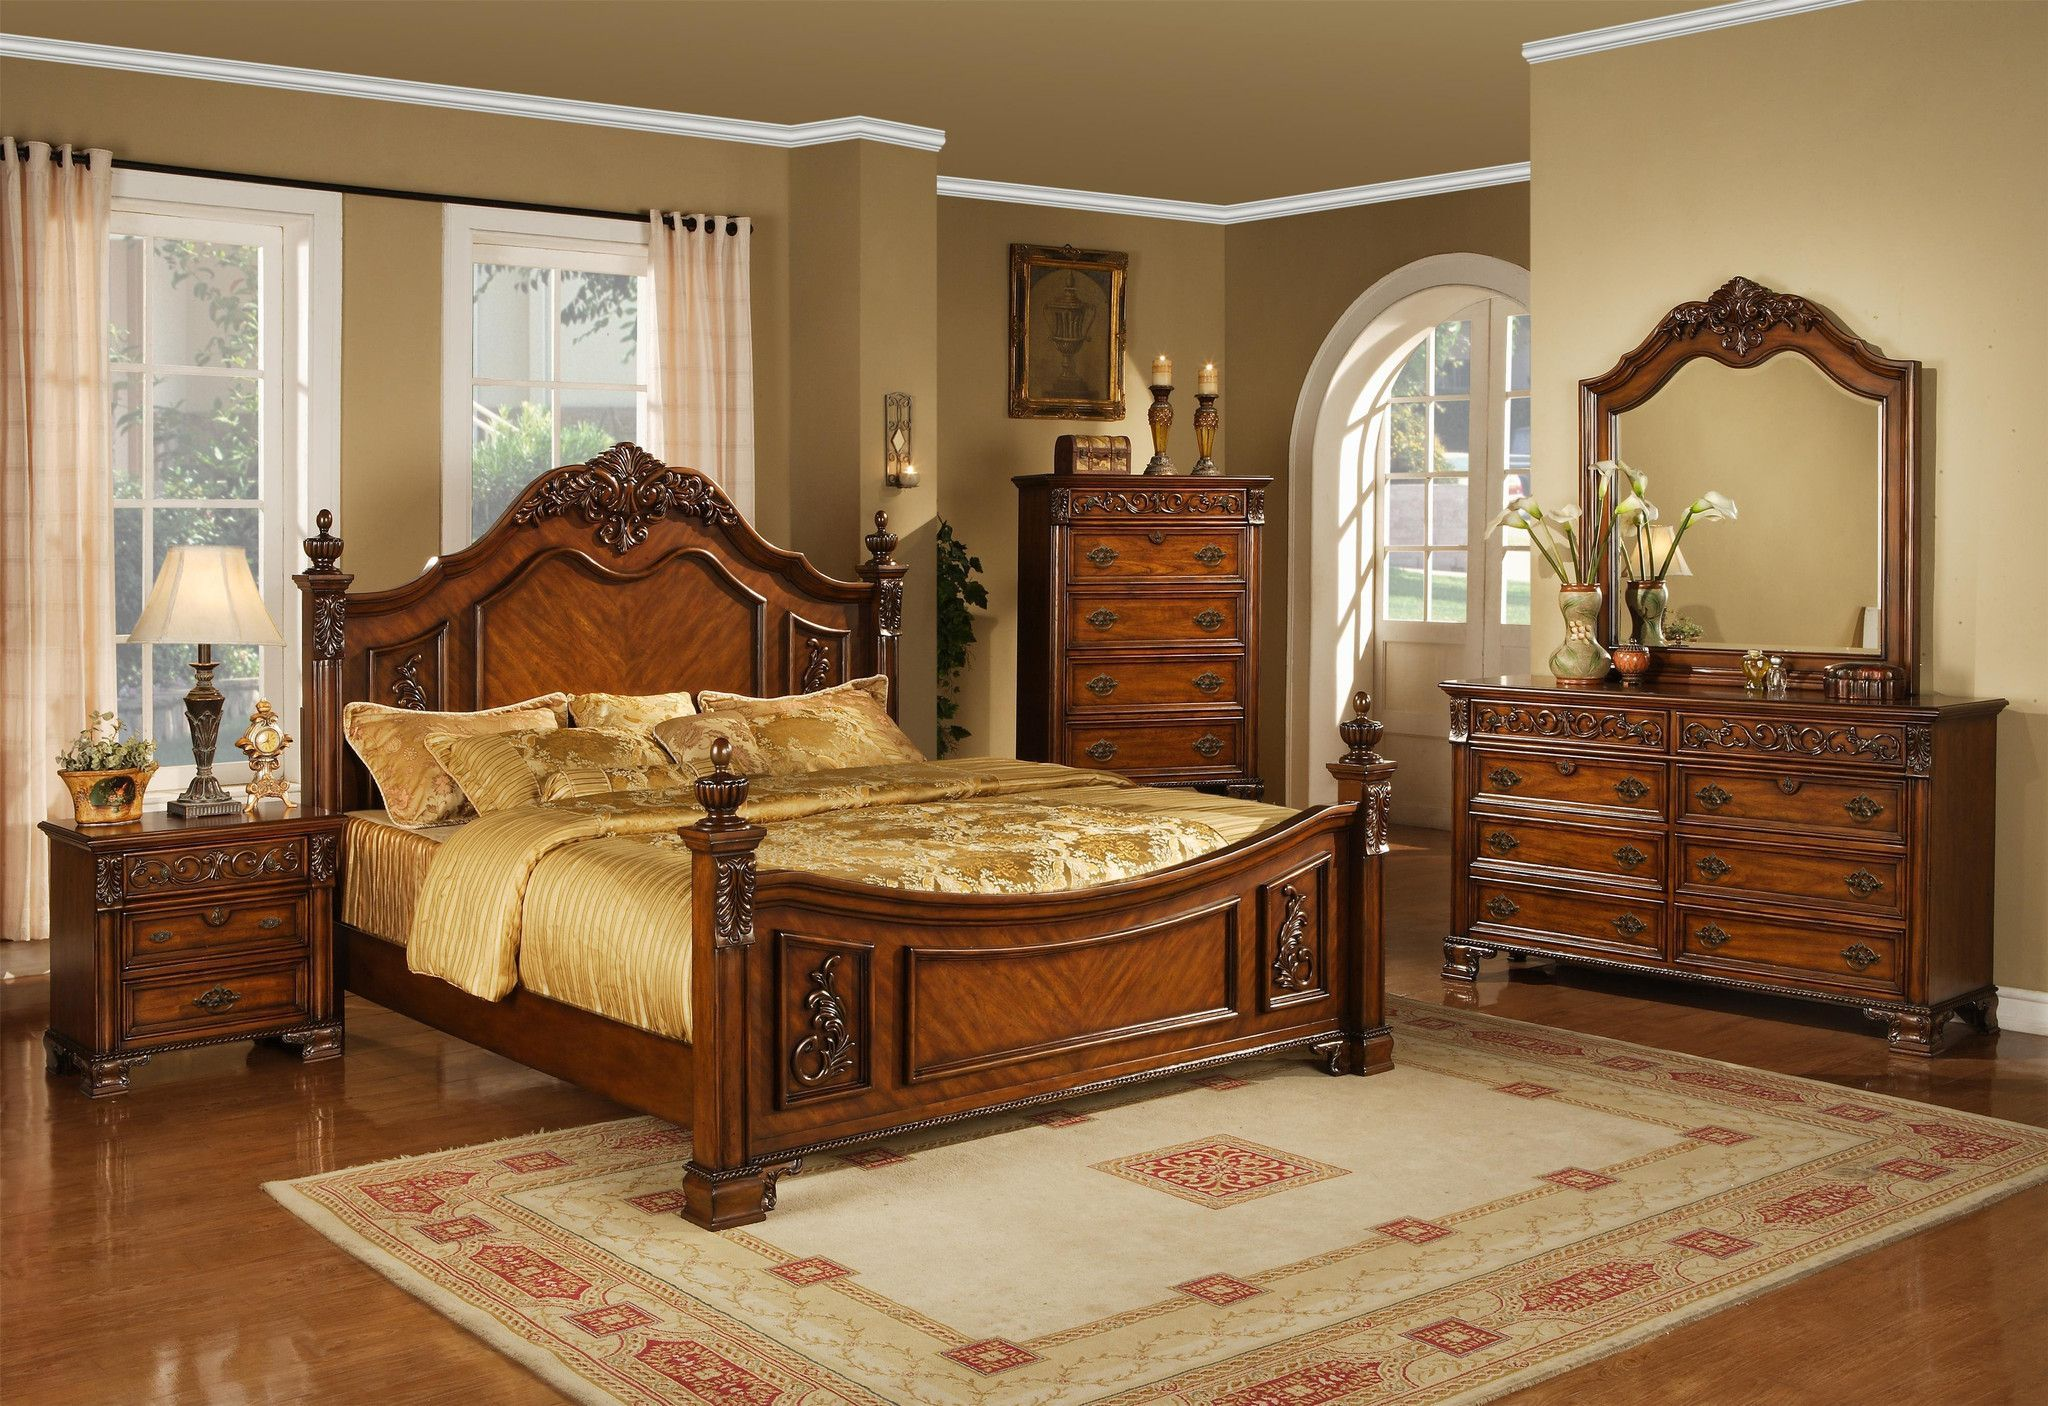 Mansion Cherry Queen Bedroom Set by Lifestyle Furniture ...